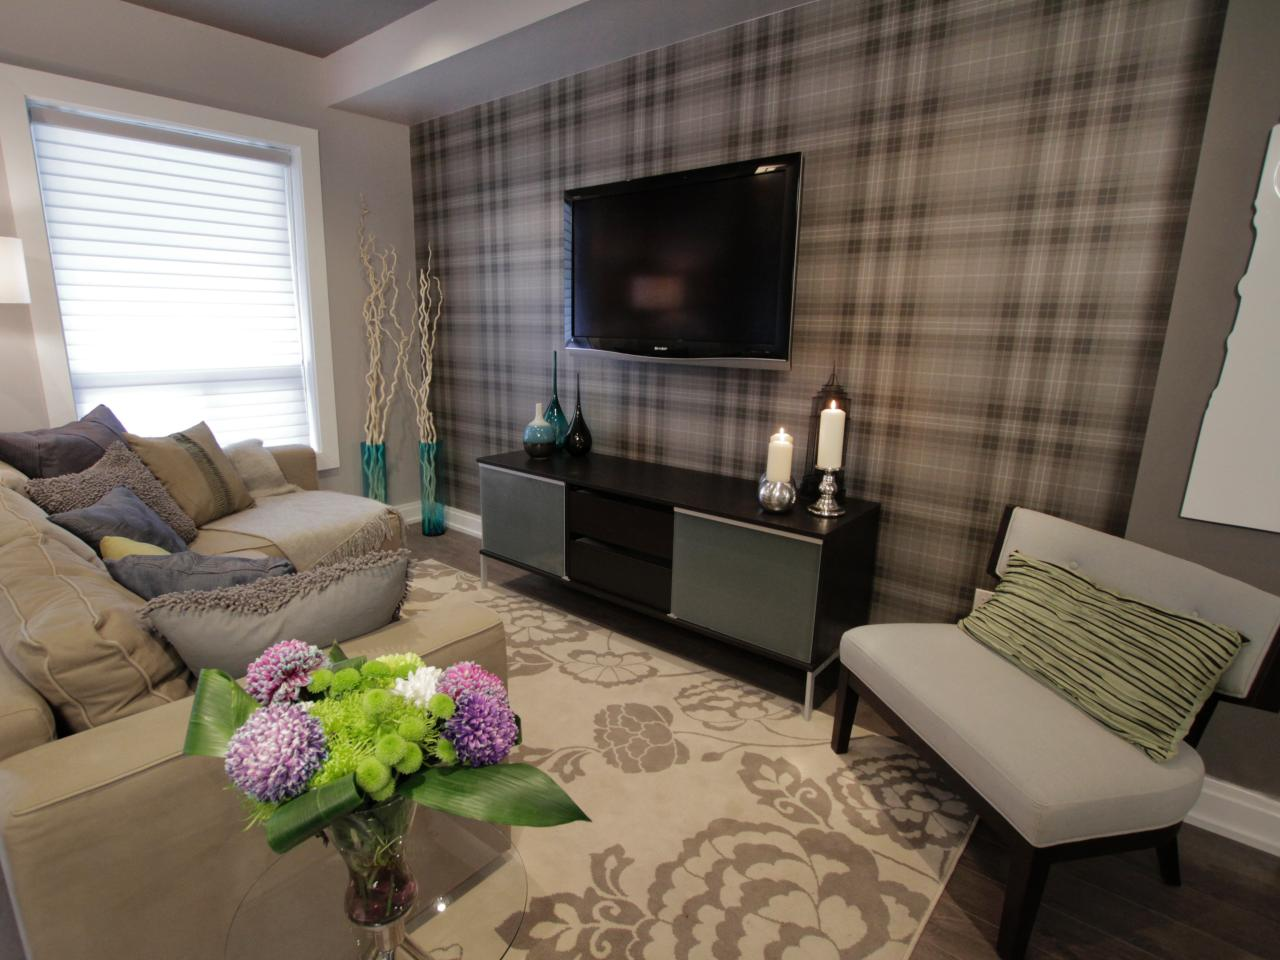 property brothers design wallpaper - photo #3